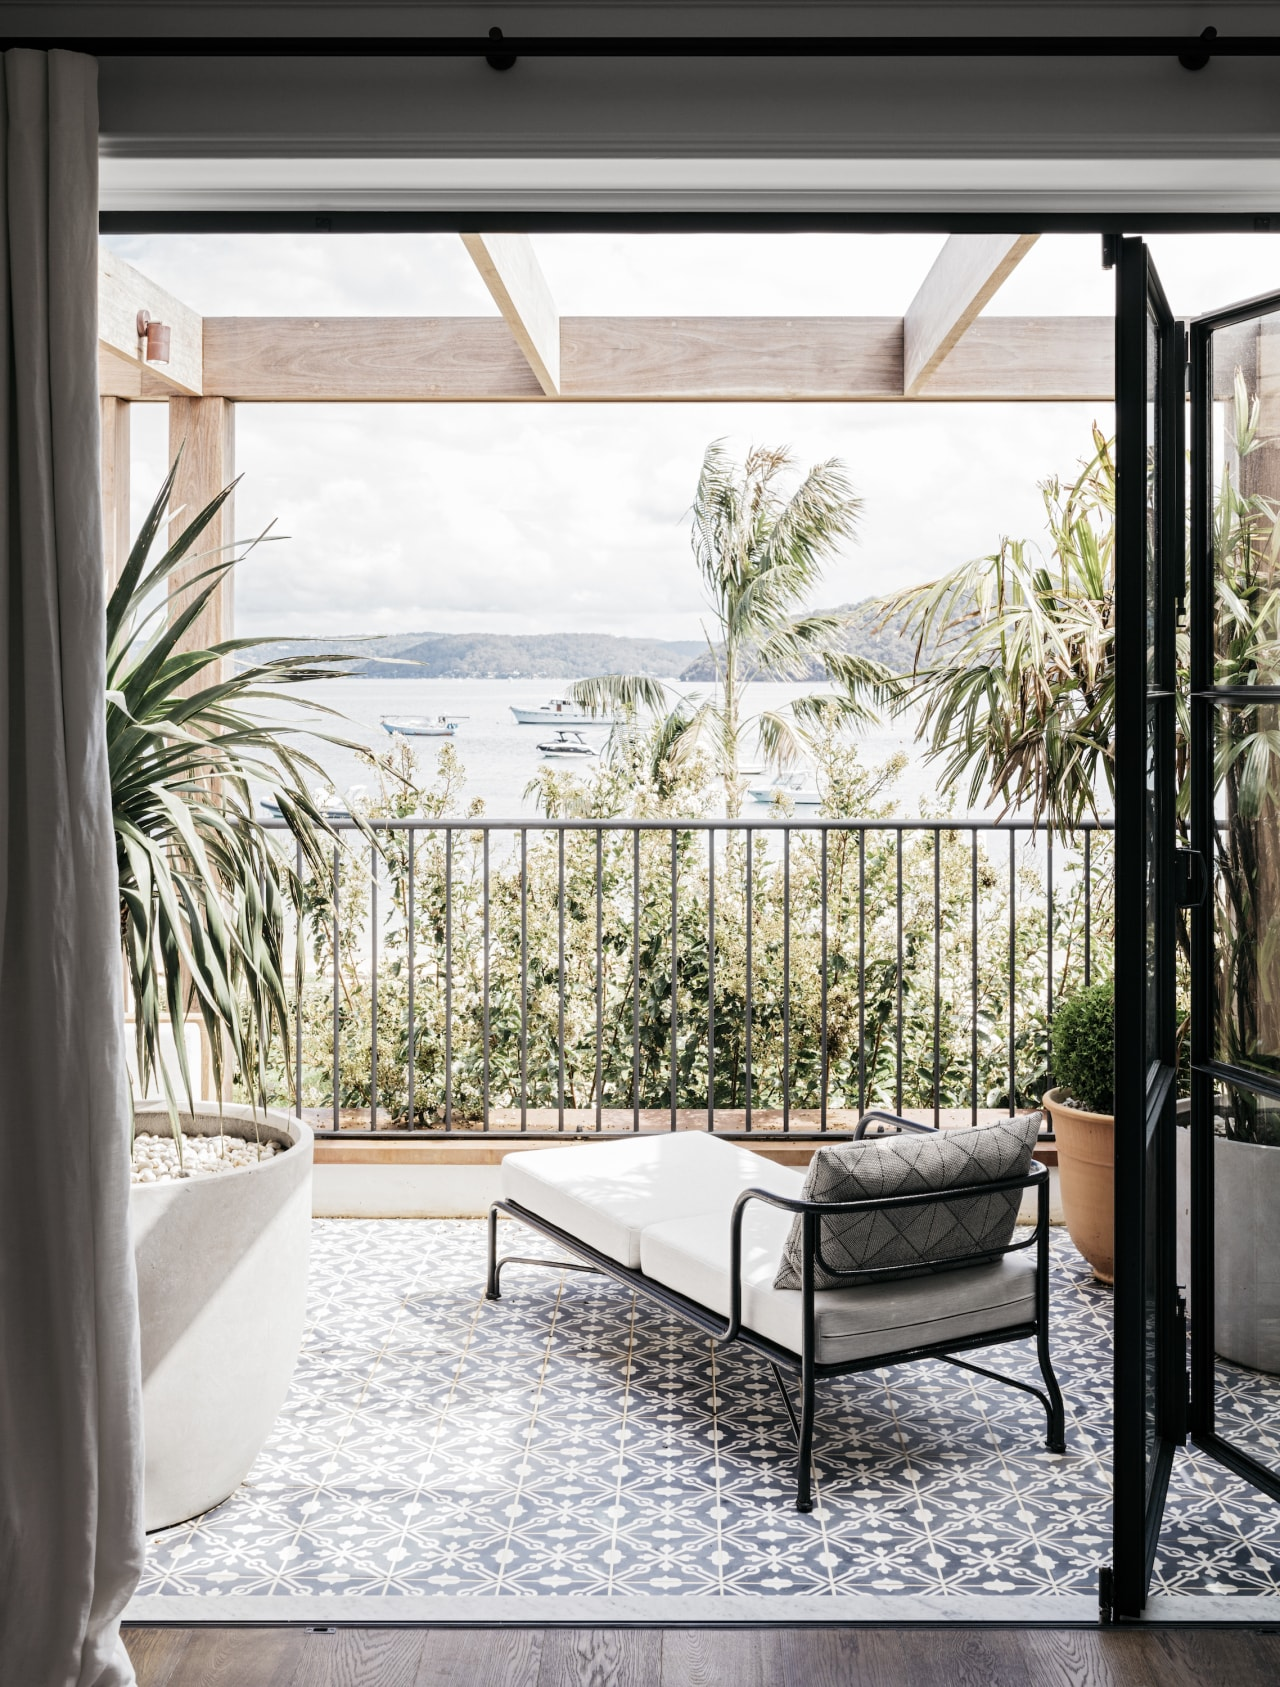 The renovation takes a restrained approach to a